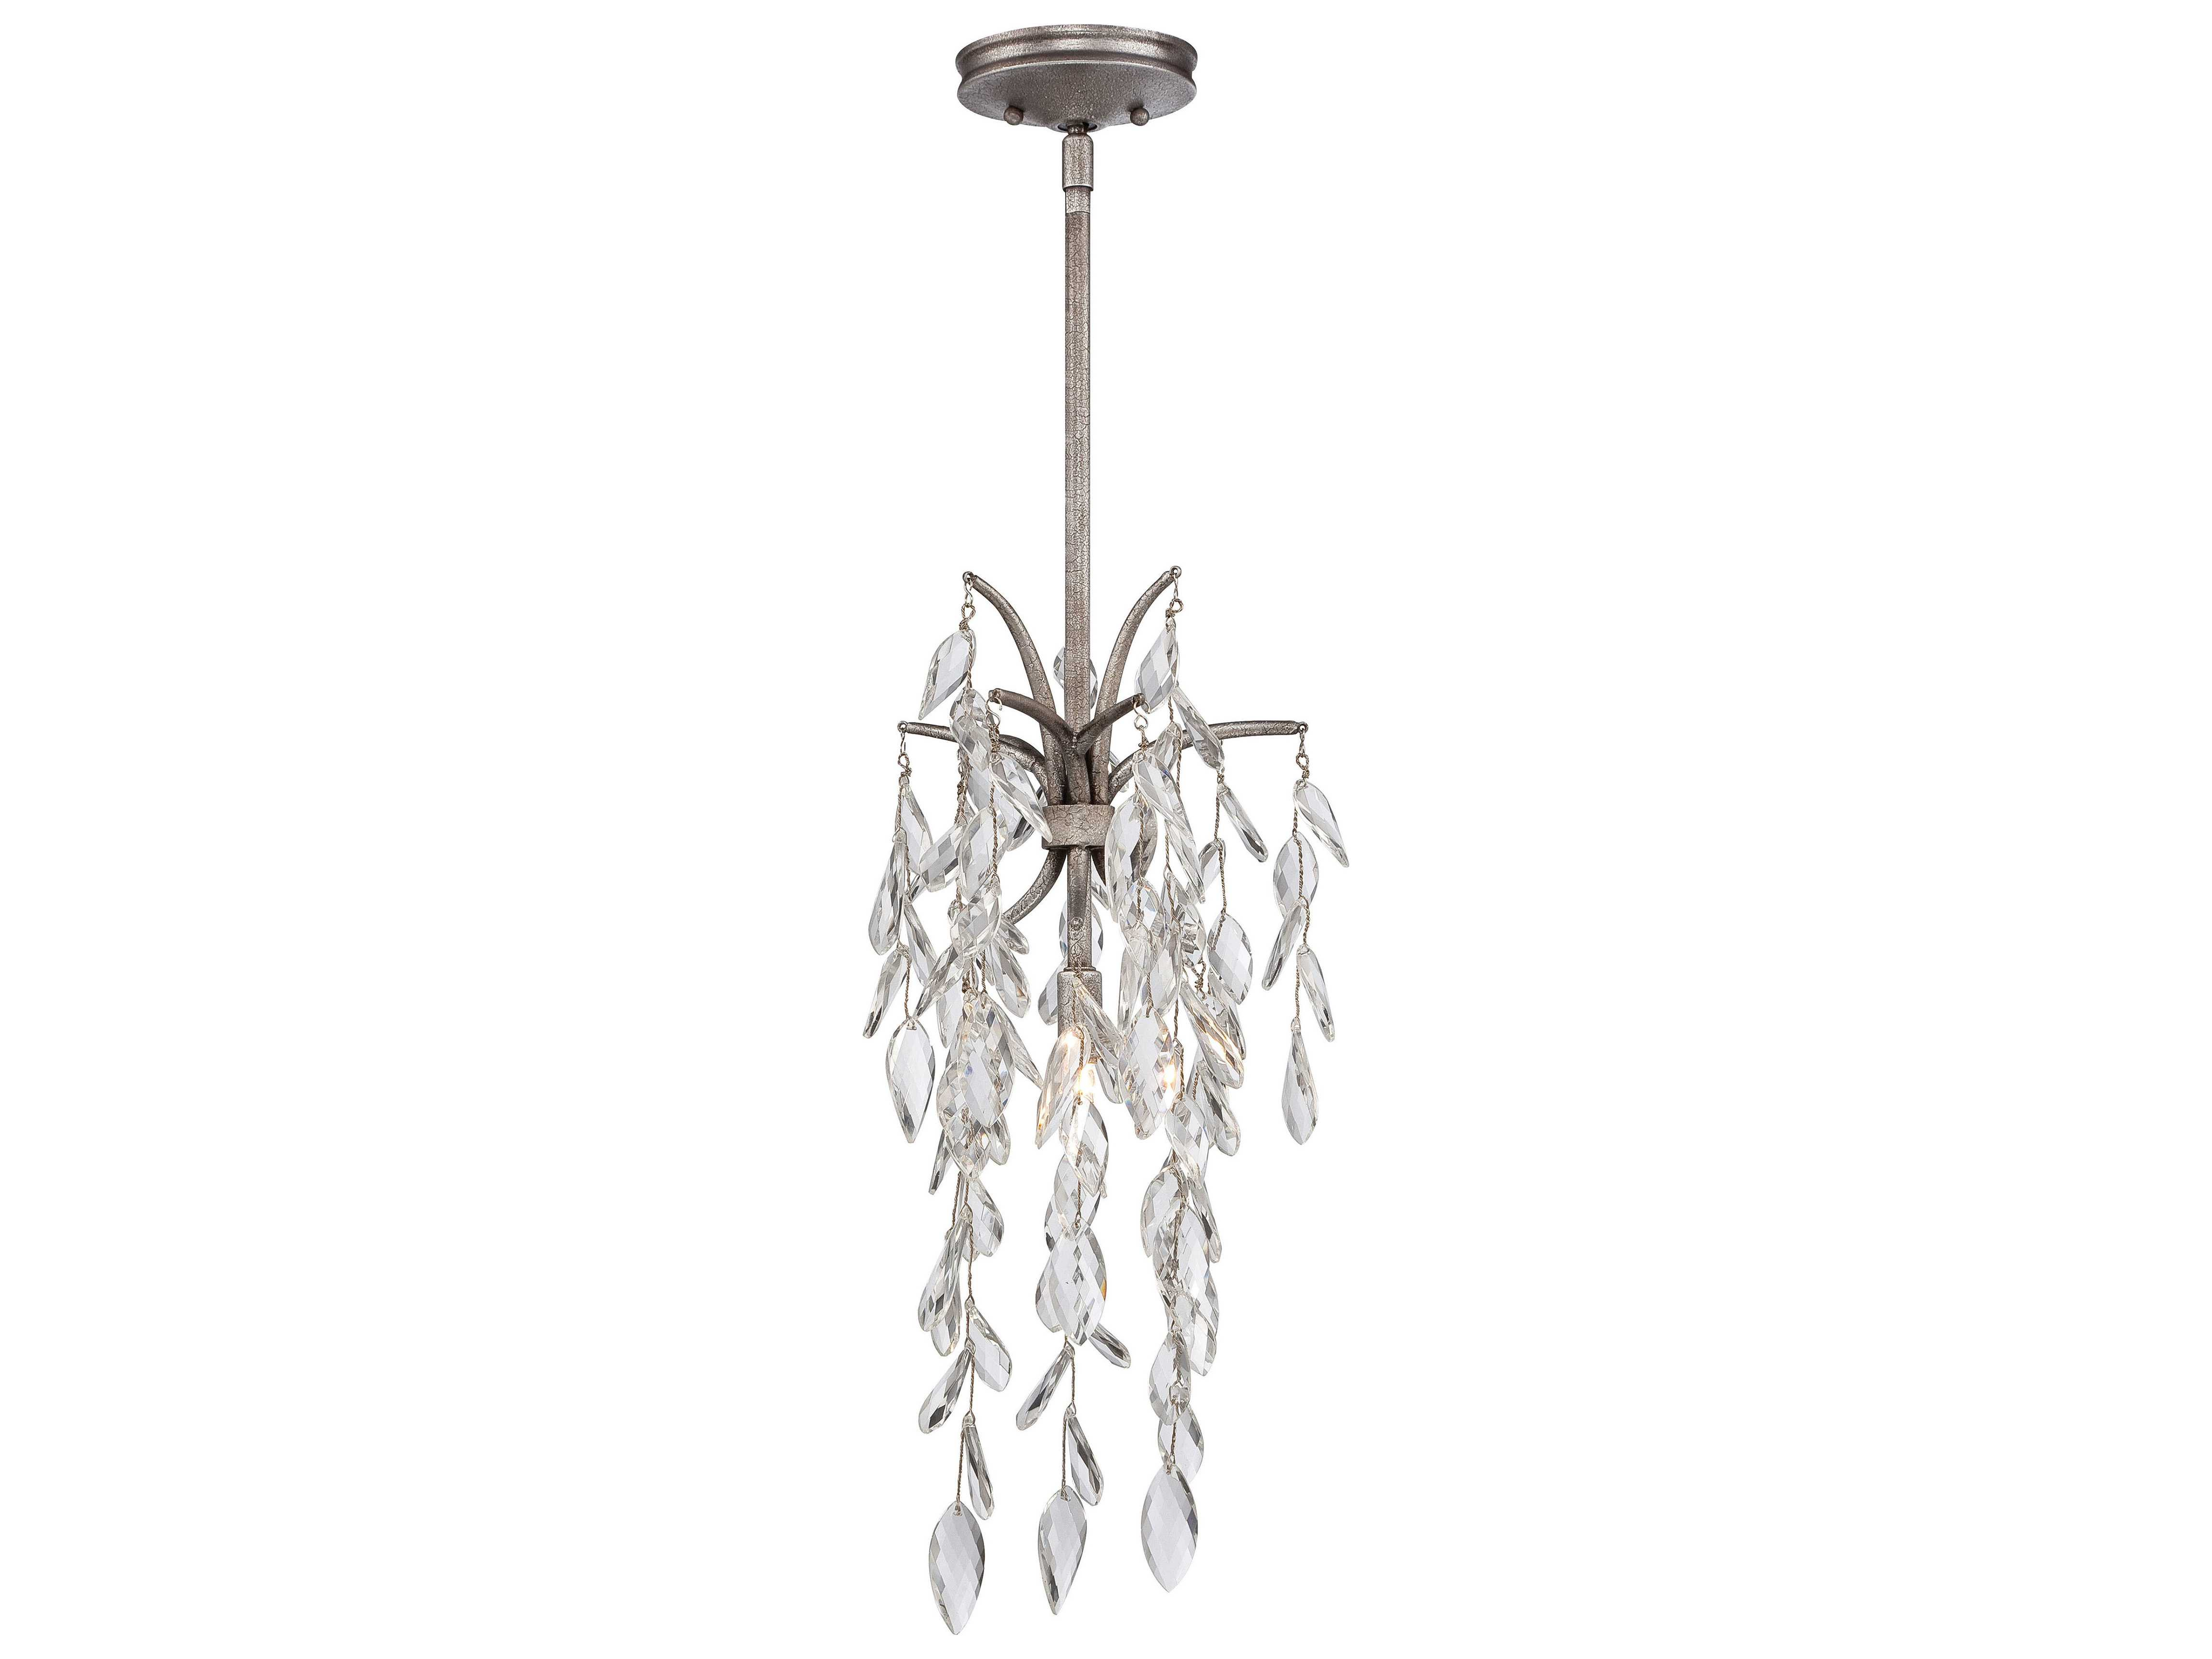 Metropolitan lighting bella flora silver mist 10 39 39 wide for Bella flora chaise lounge